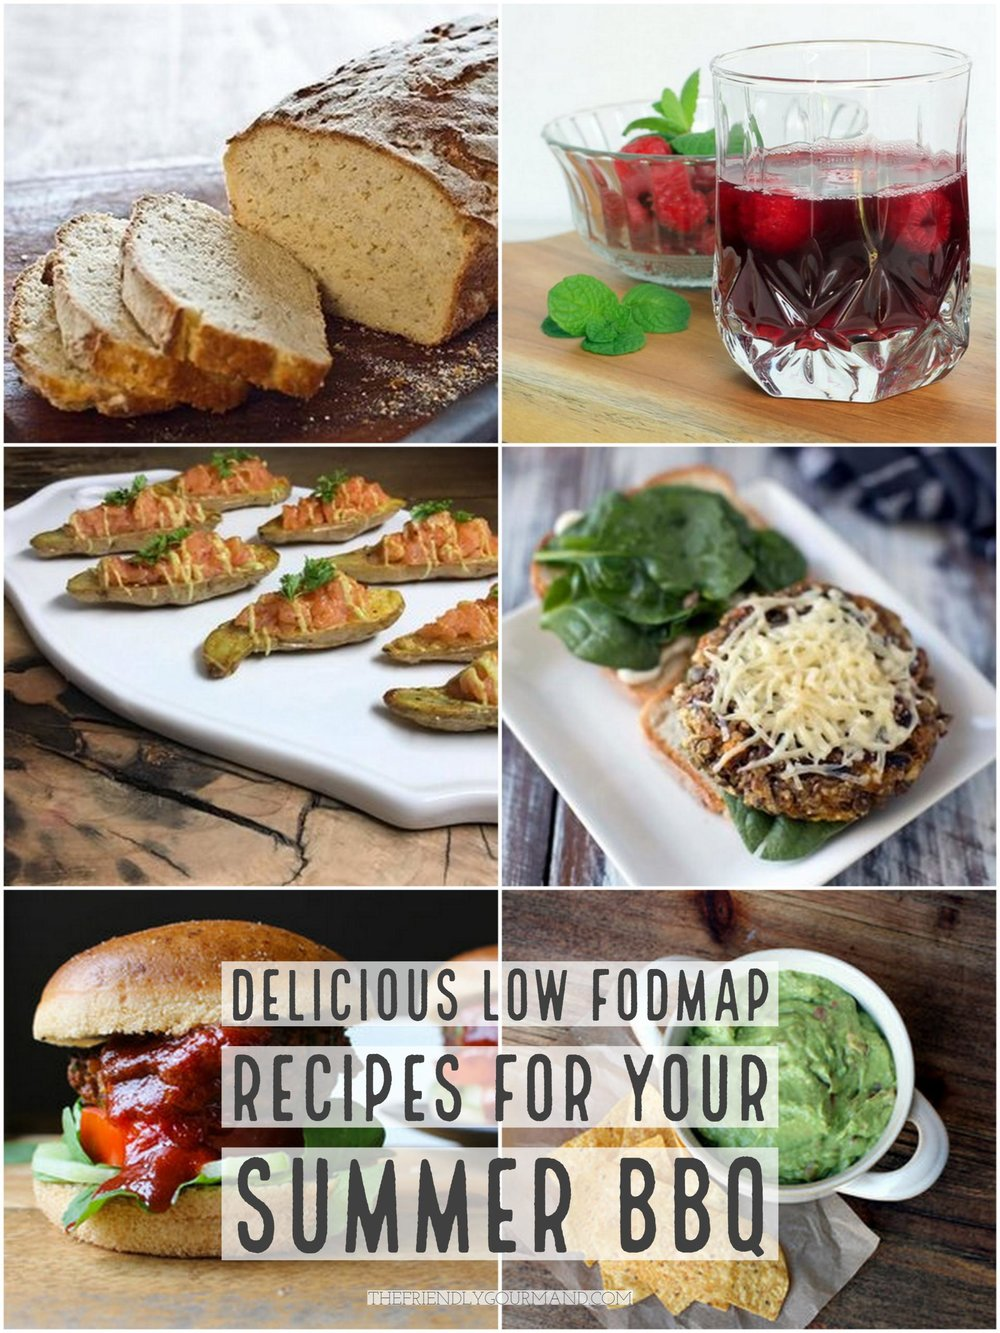 low-fodmap-gluten-free-bbq-barbeque-recipes-round-up_the-friendly-gourmand_TITLE.jpg